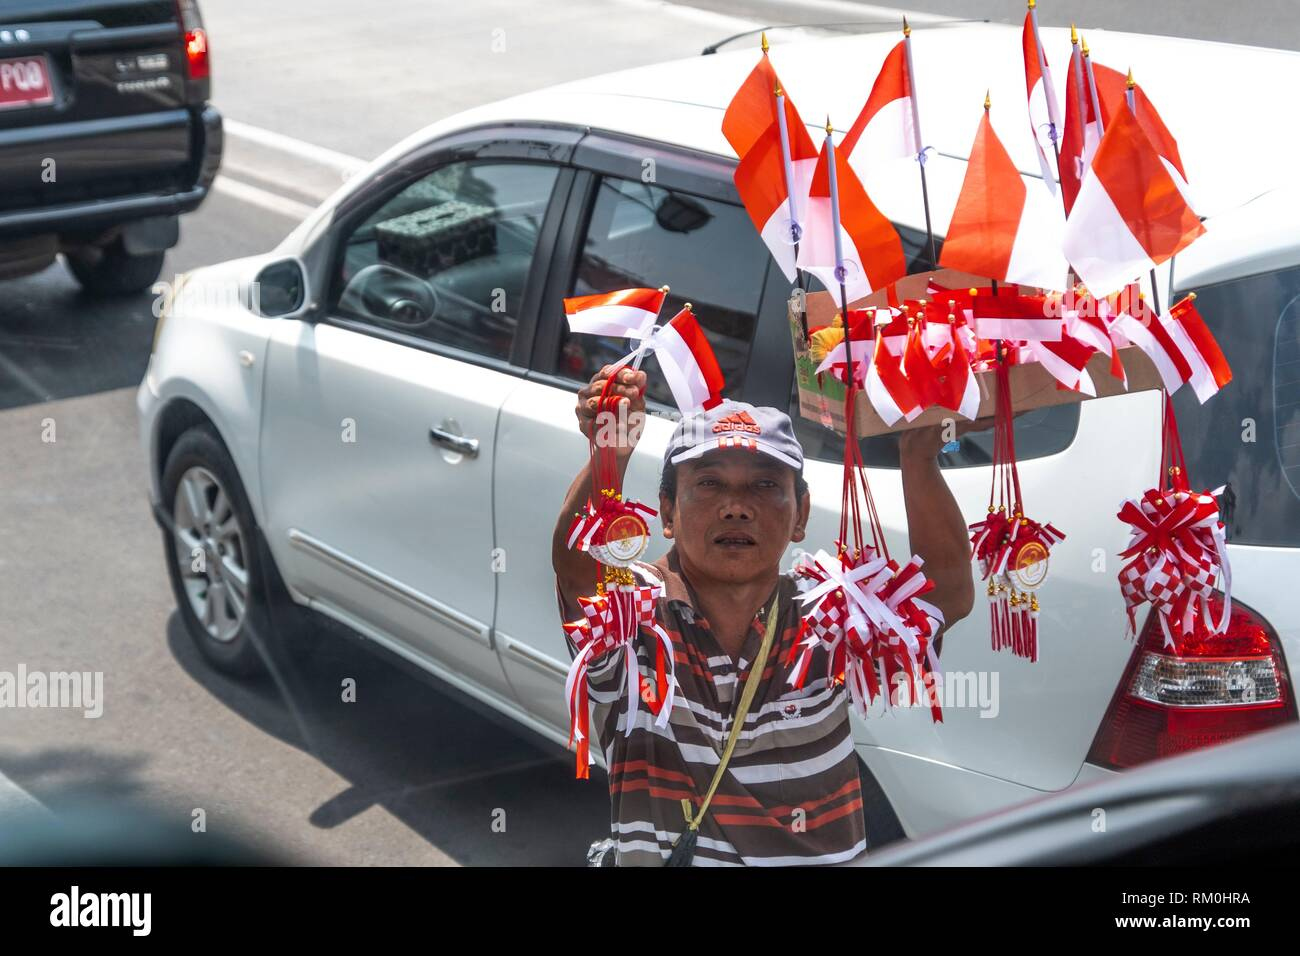 Street vendor selling national flags in Jakarta, Indonesia - Stock Image